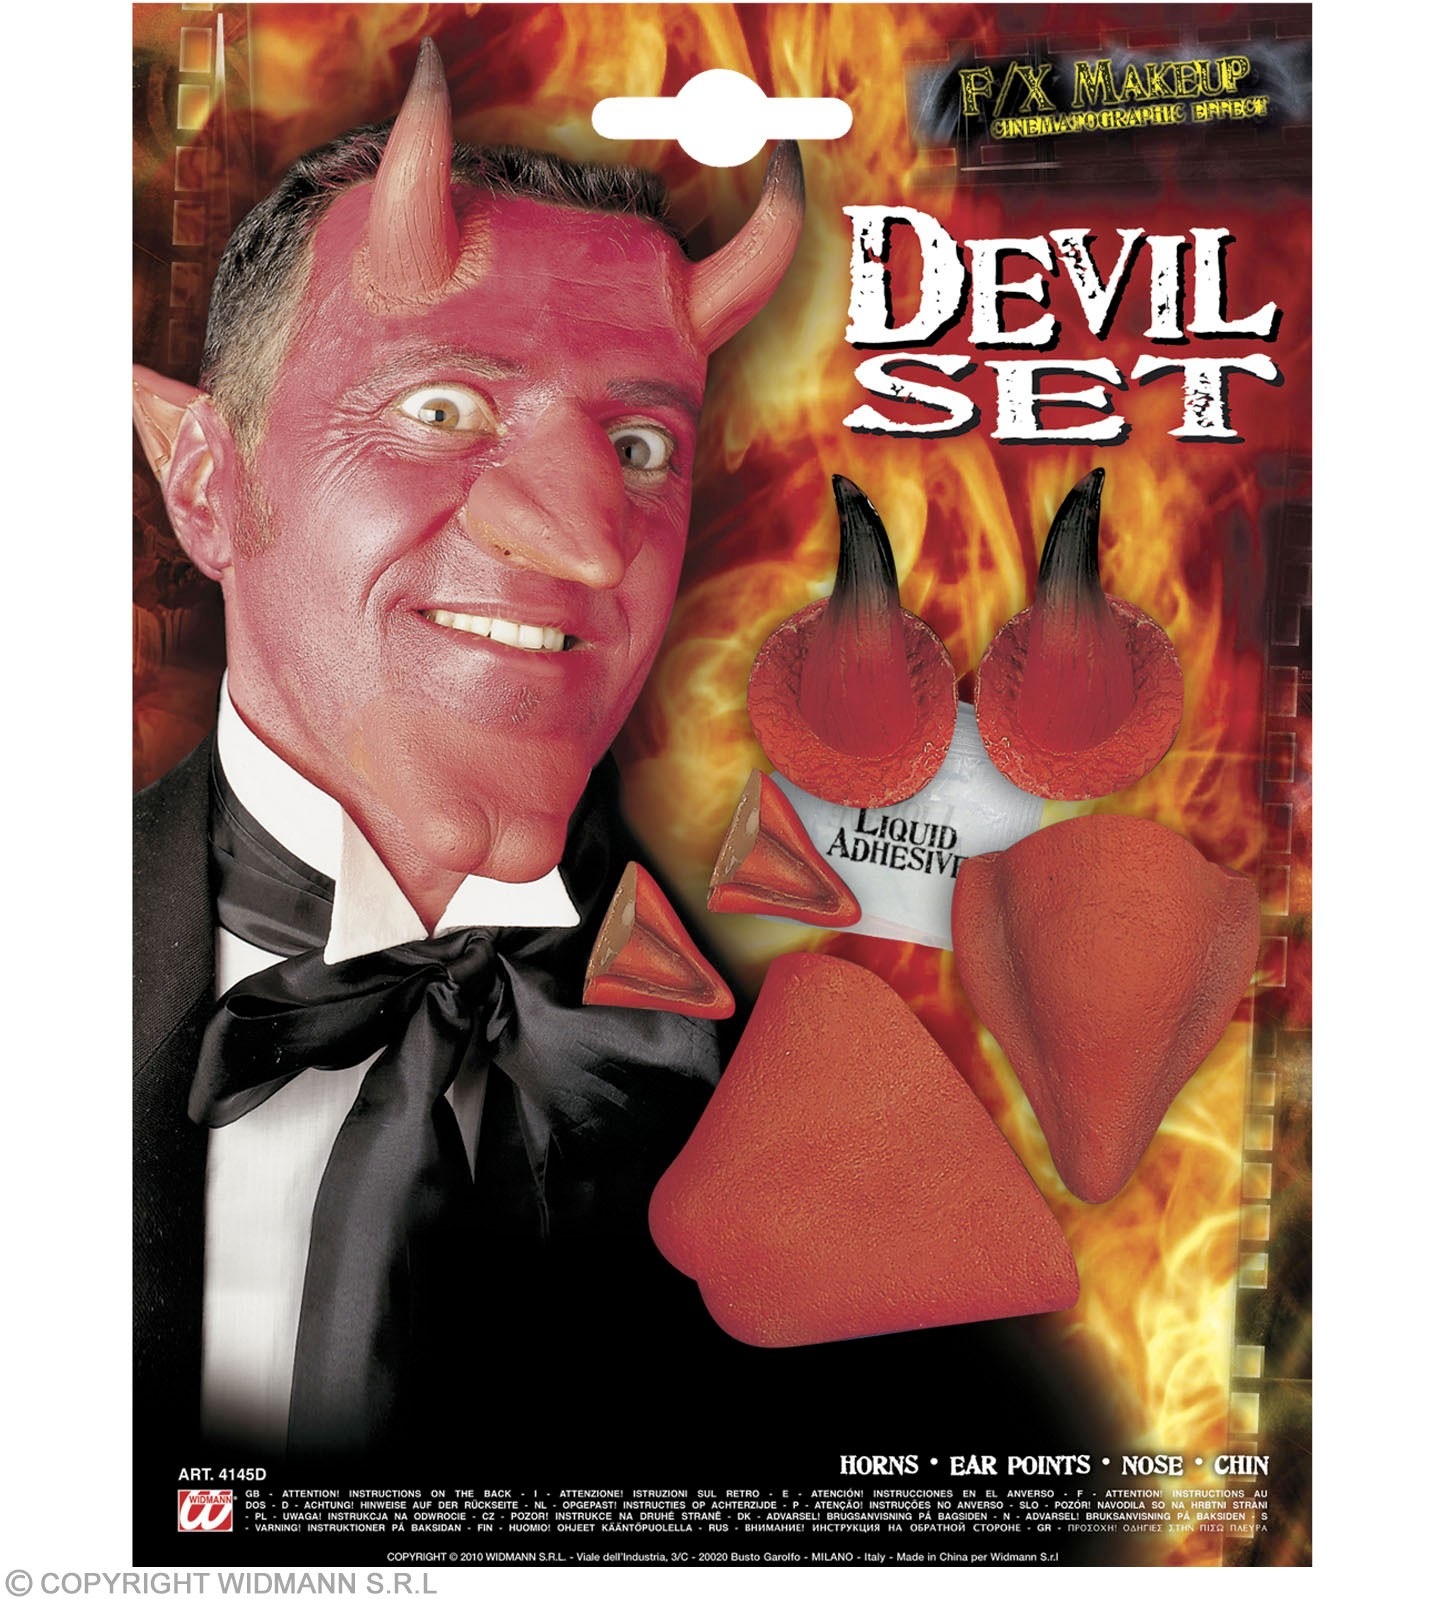 Devil Set Professional Nose Chin Horns Ears Fancy Dress (Halloween)